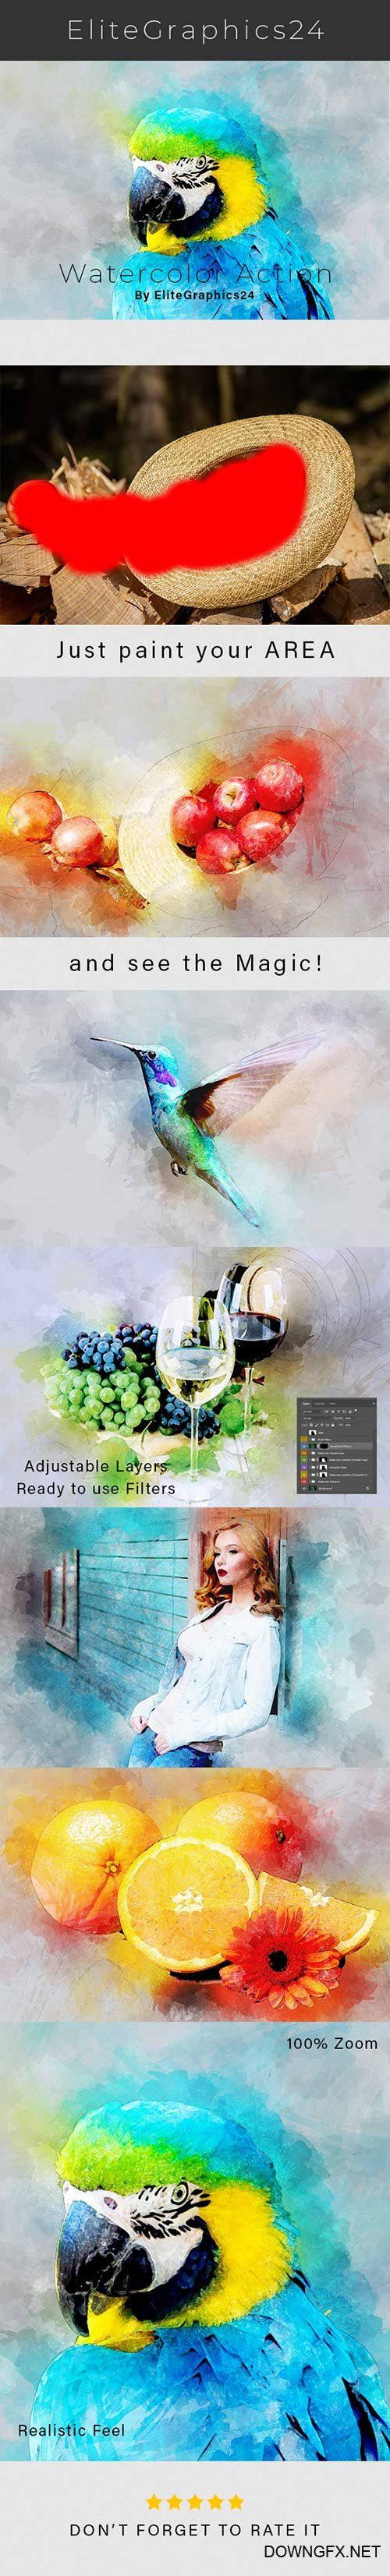 GraphicRiver - Realistic Watercolor Photoshop Action 22342745